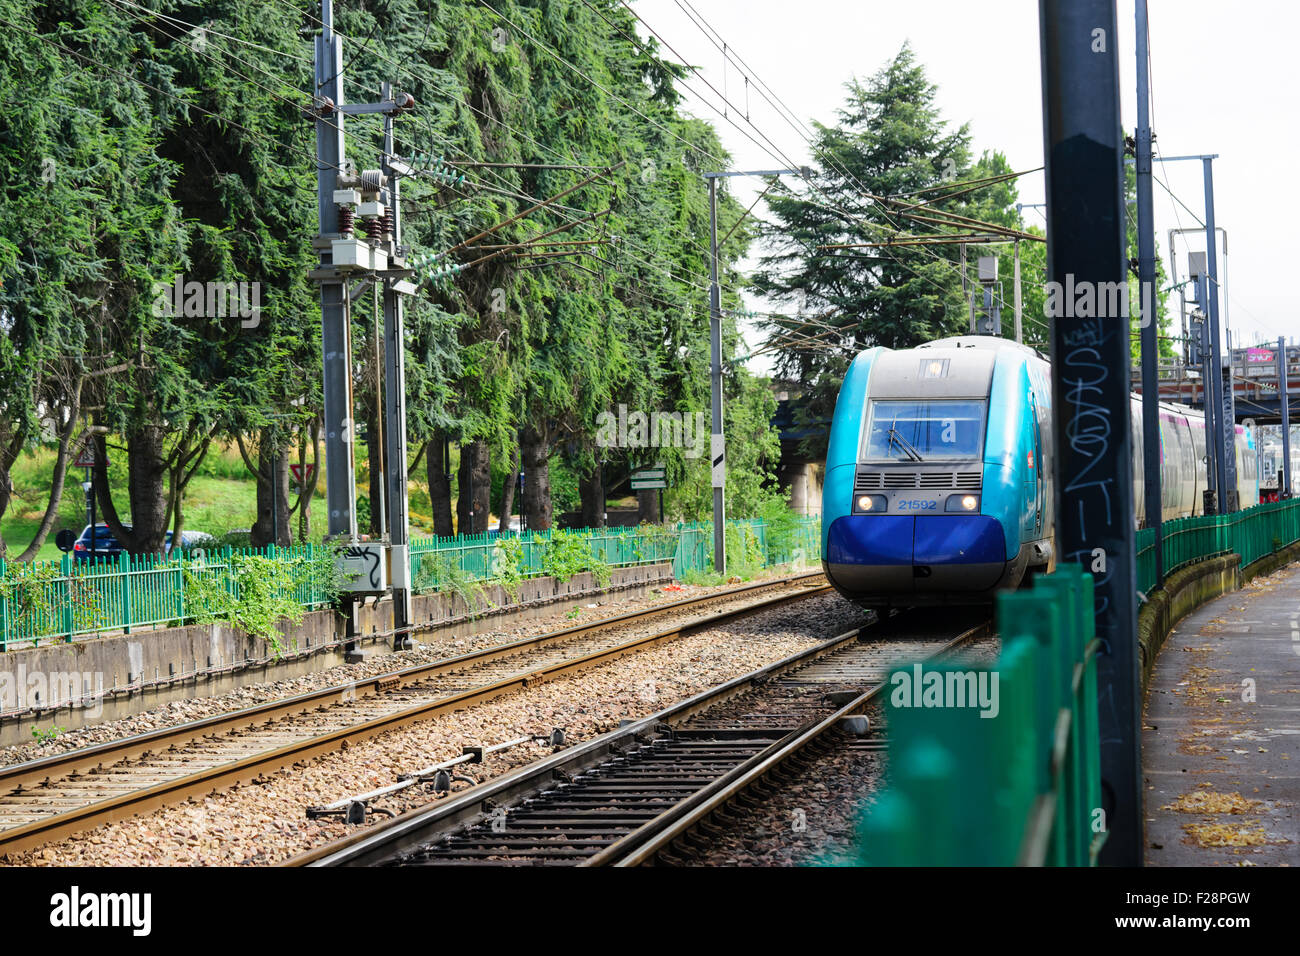 trams and tramlines in nantes france Stock Photo